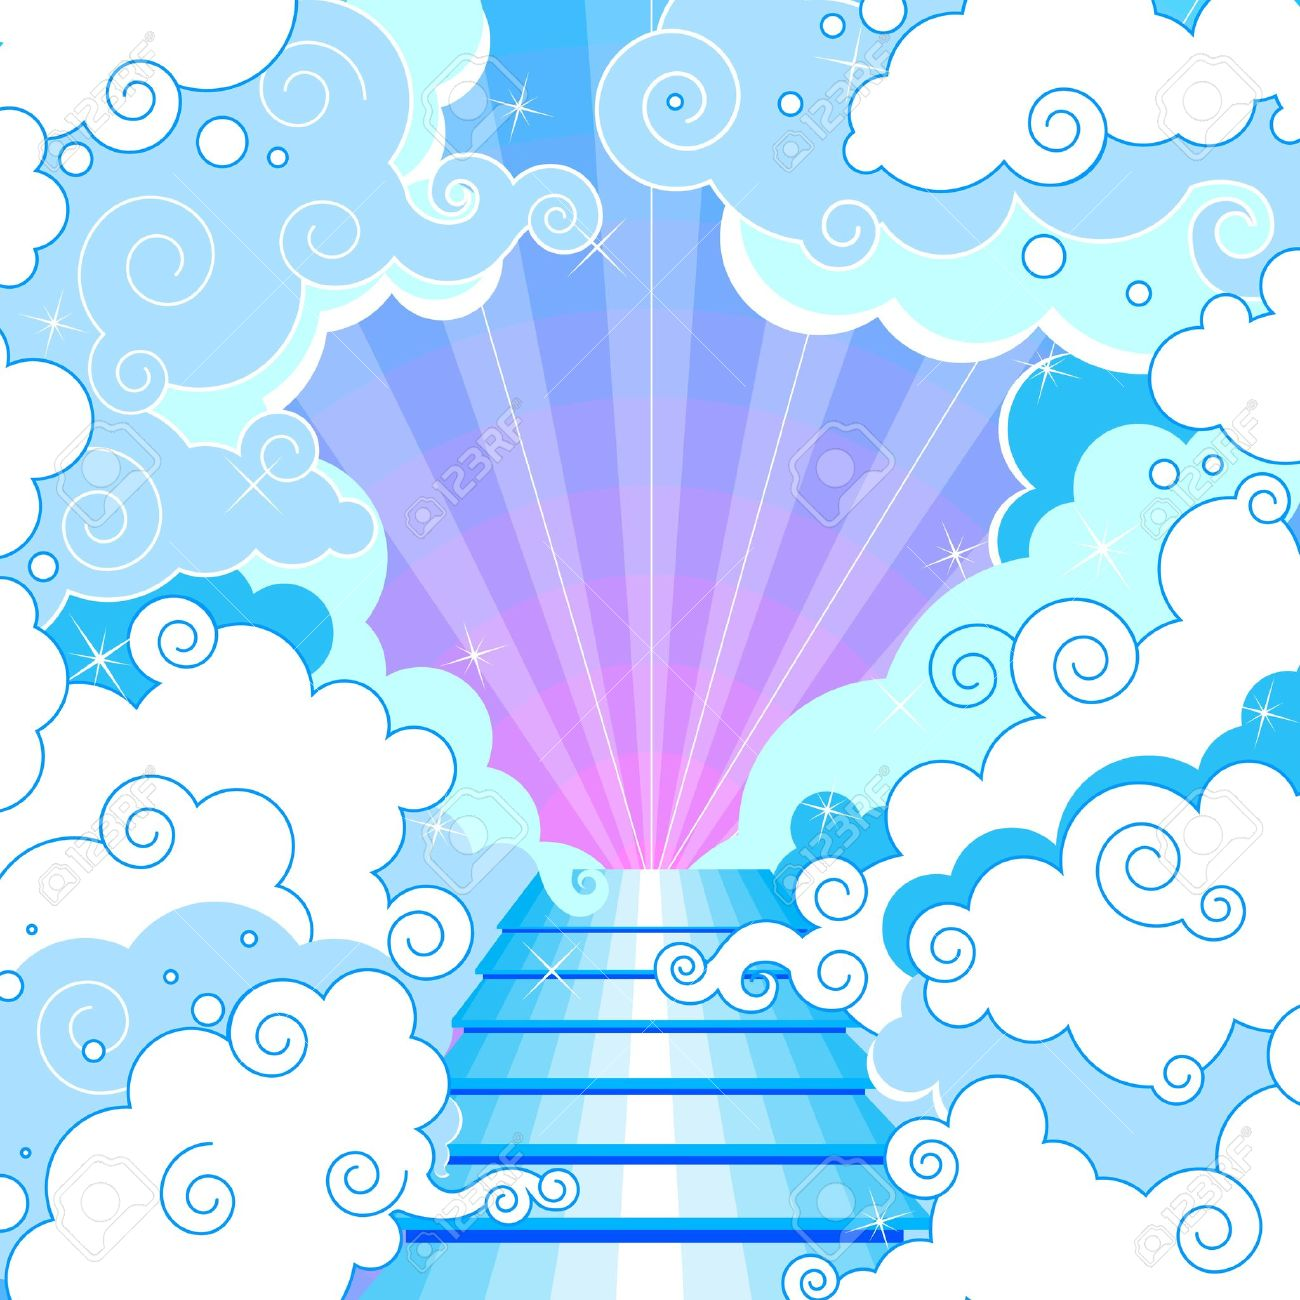 Place clipart heaven Road collection Clipart to In